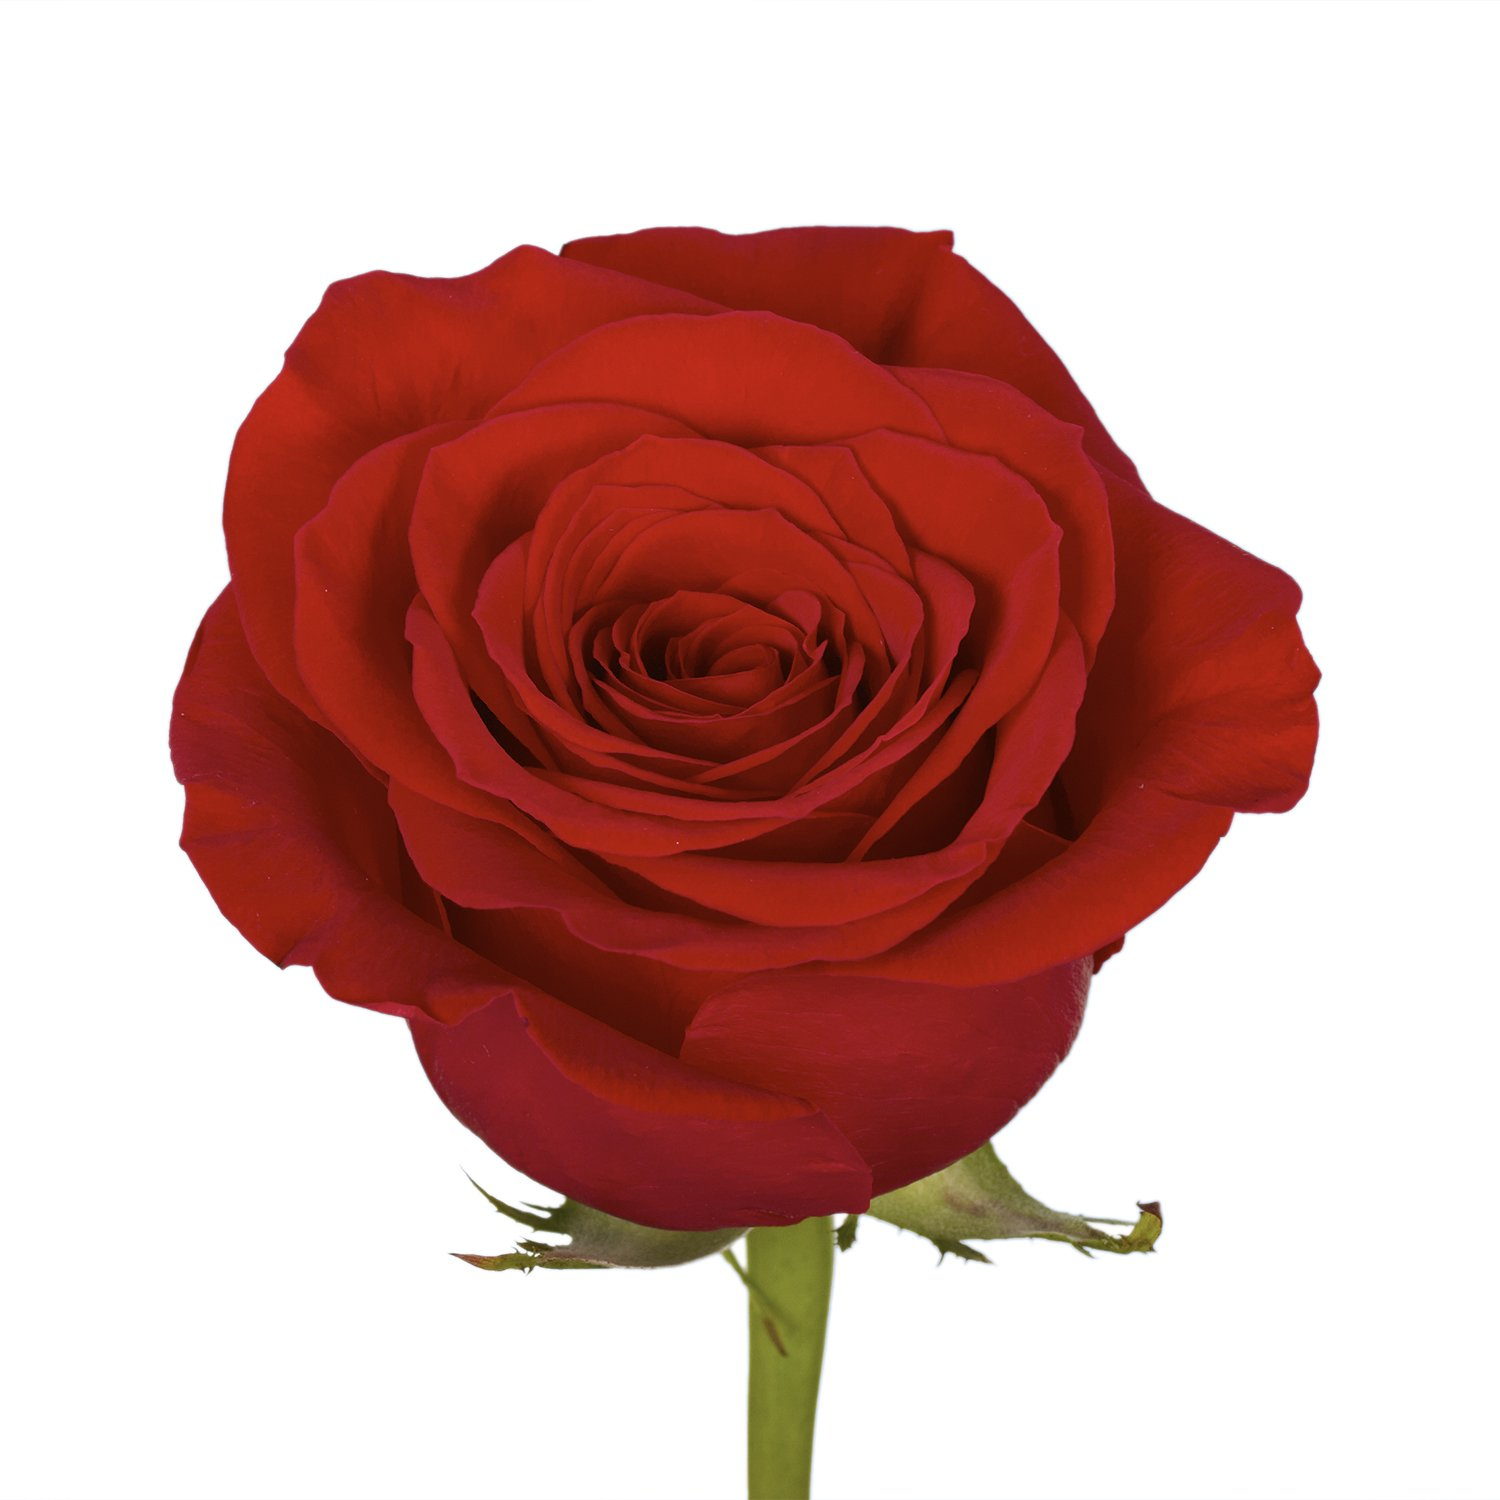 Amazon globalrose 250 fresh cut red roses freedom red roses amazon globalrose 250 fresh cut red roses freedom red roses fresh flowers wholesale express delivery fresh cut format rose flowers grocery izmirmasajfo